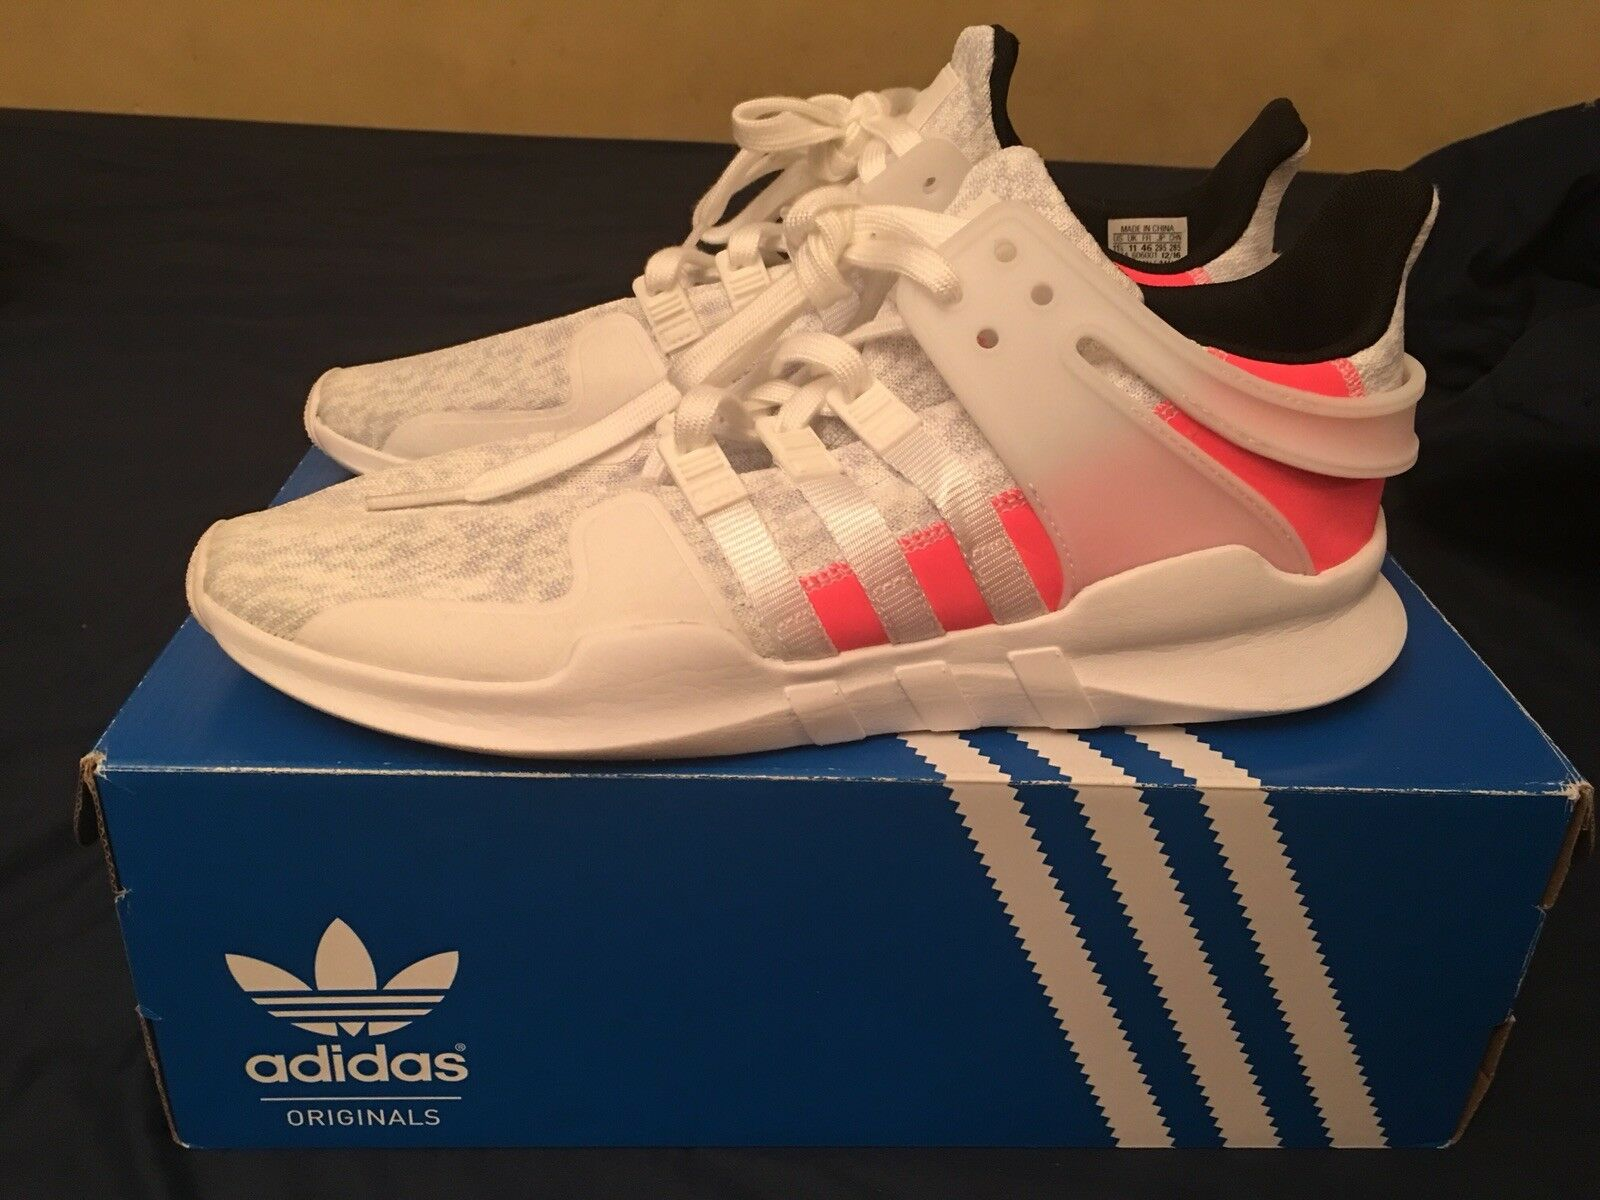 Adidas Men's 11.5 Shoe EQT Support ADV Running Shoe 11.5 White/Pink BB2791 32016d